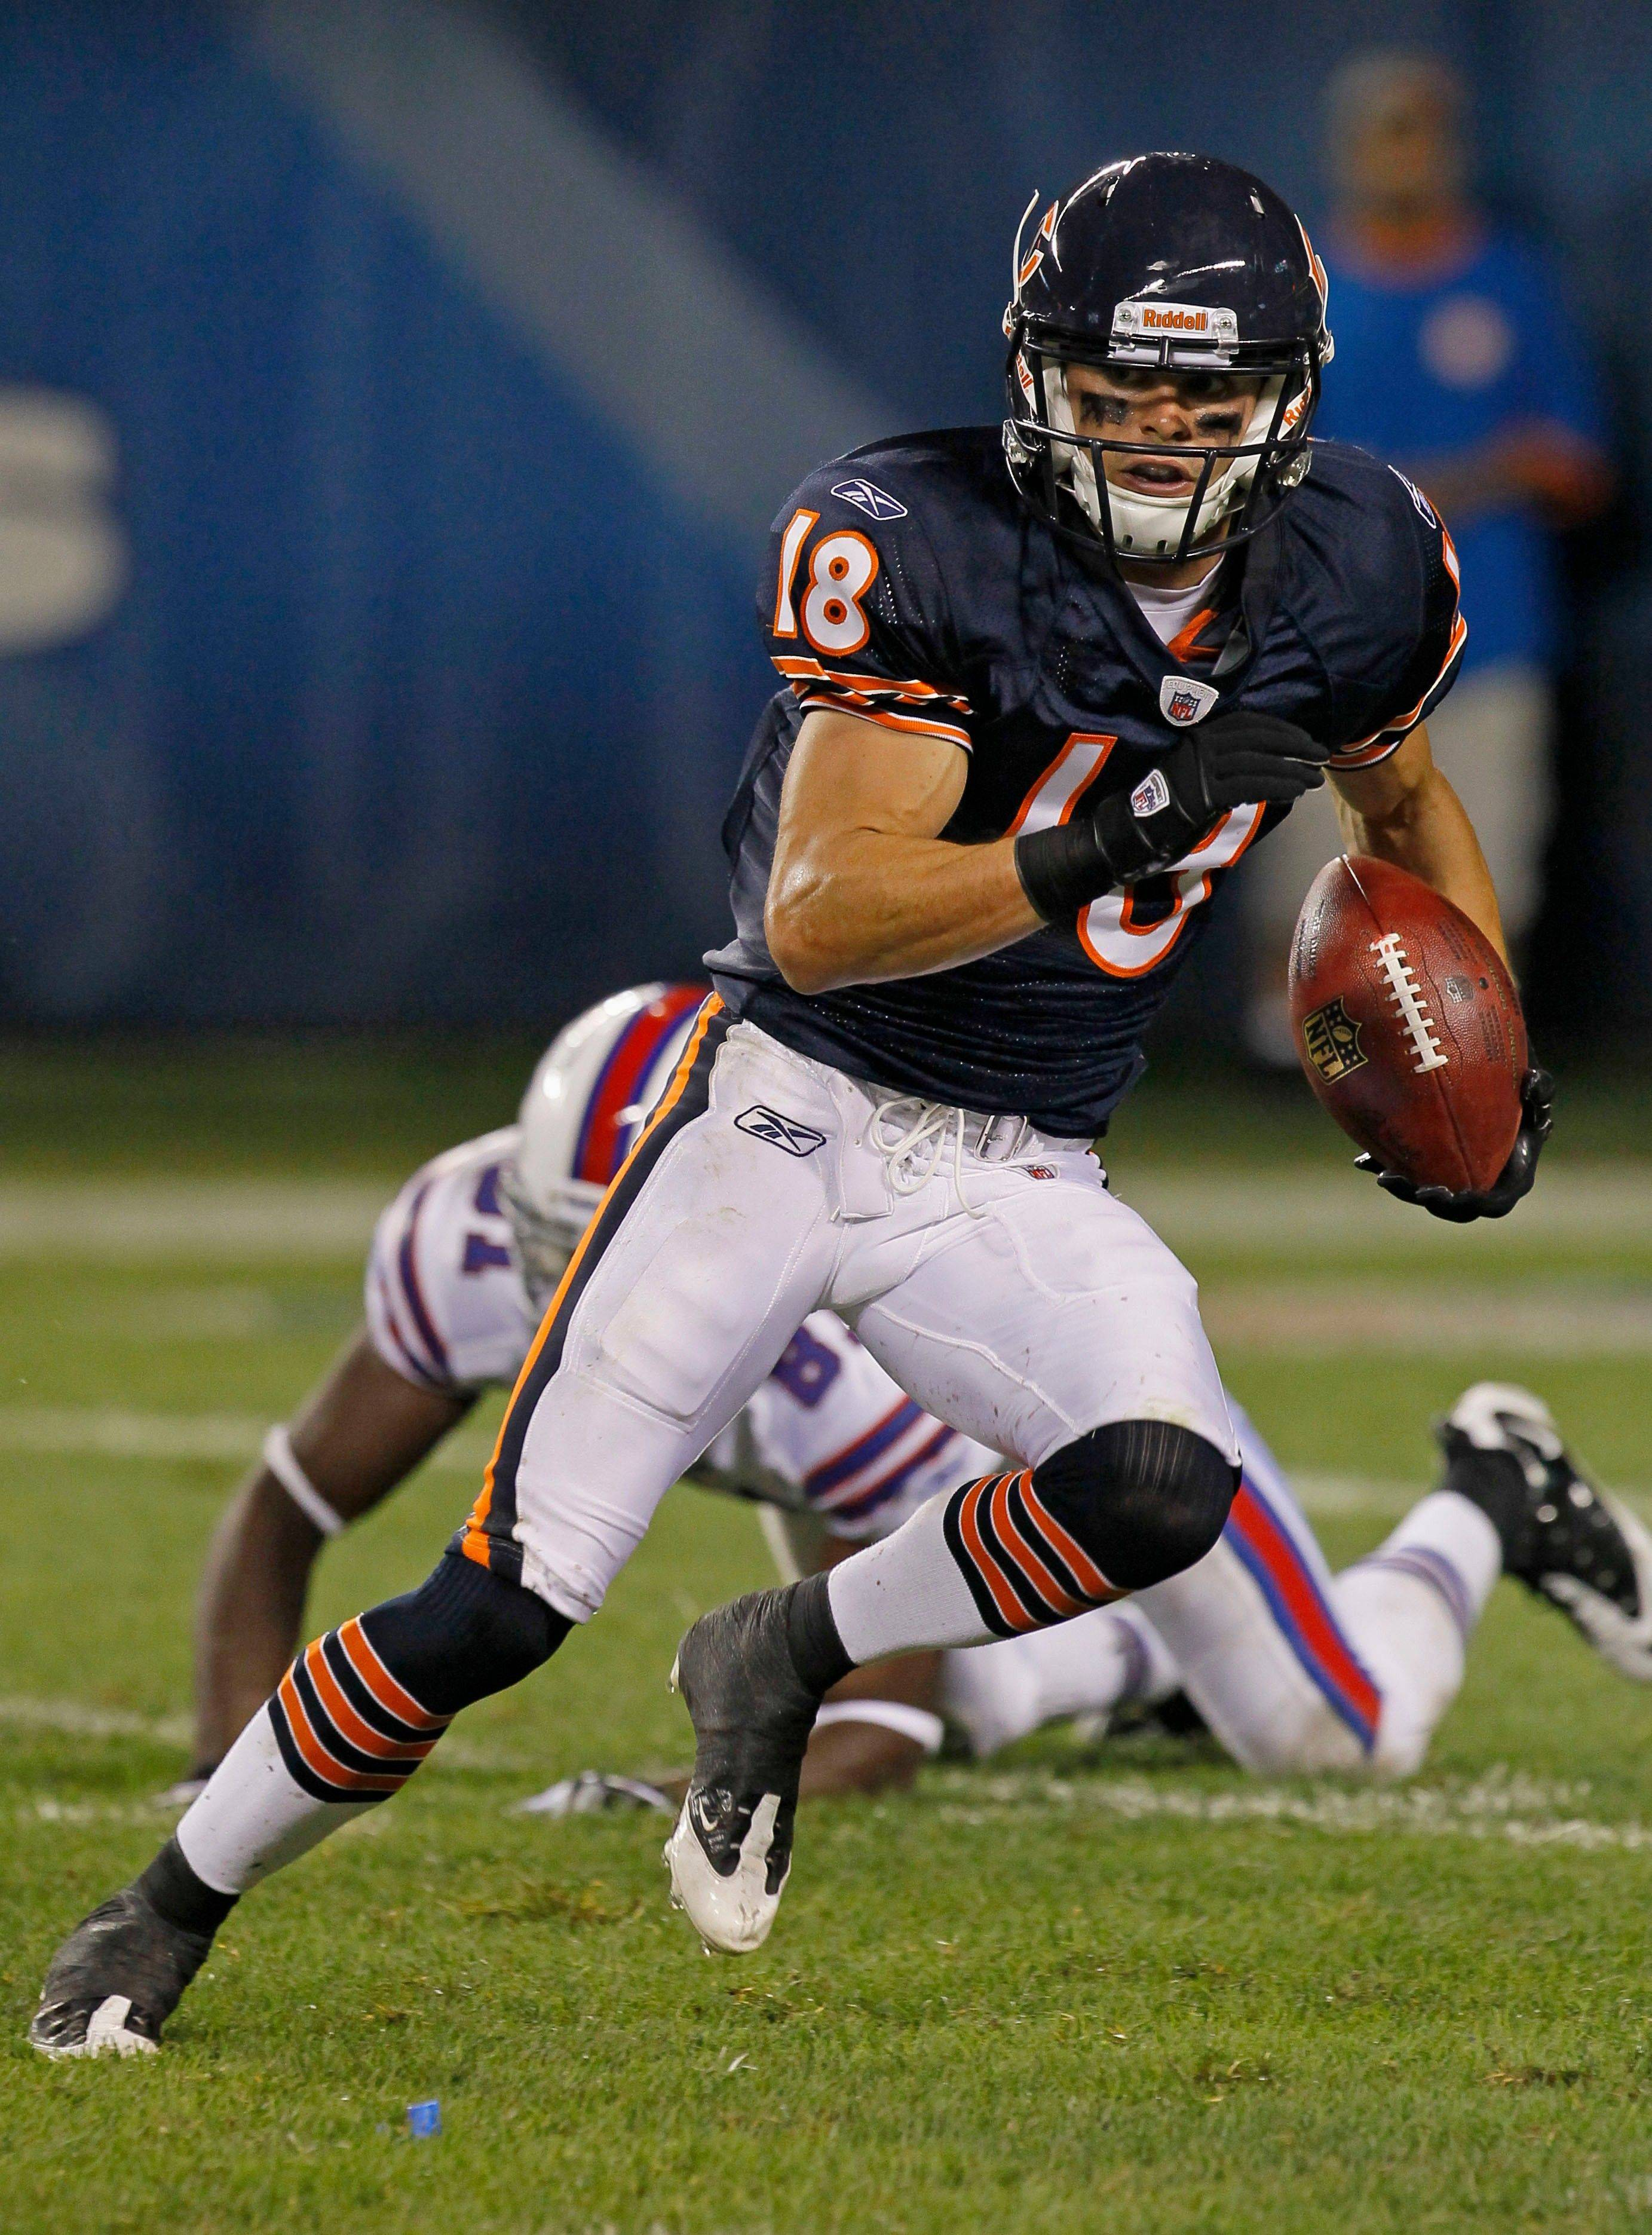 Bears wide receiver Dane Sanzenbacher is making quite an impression with the Bears.